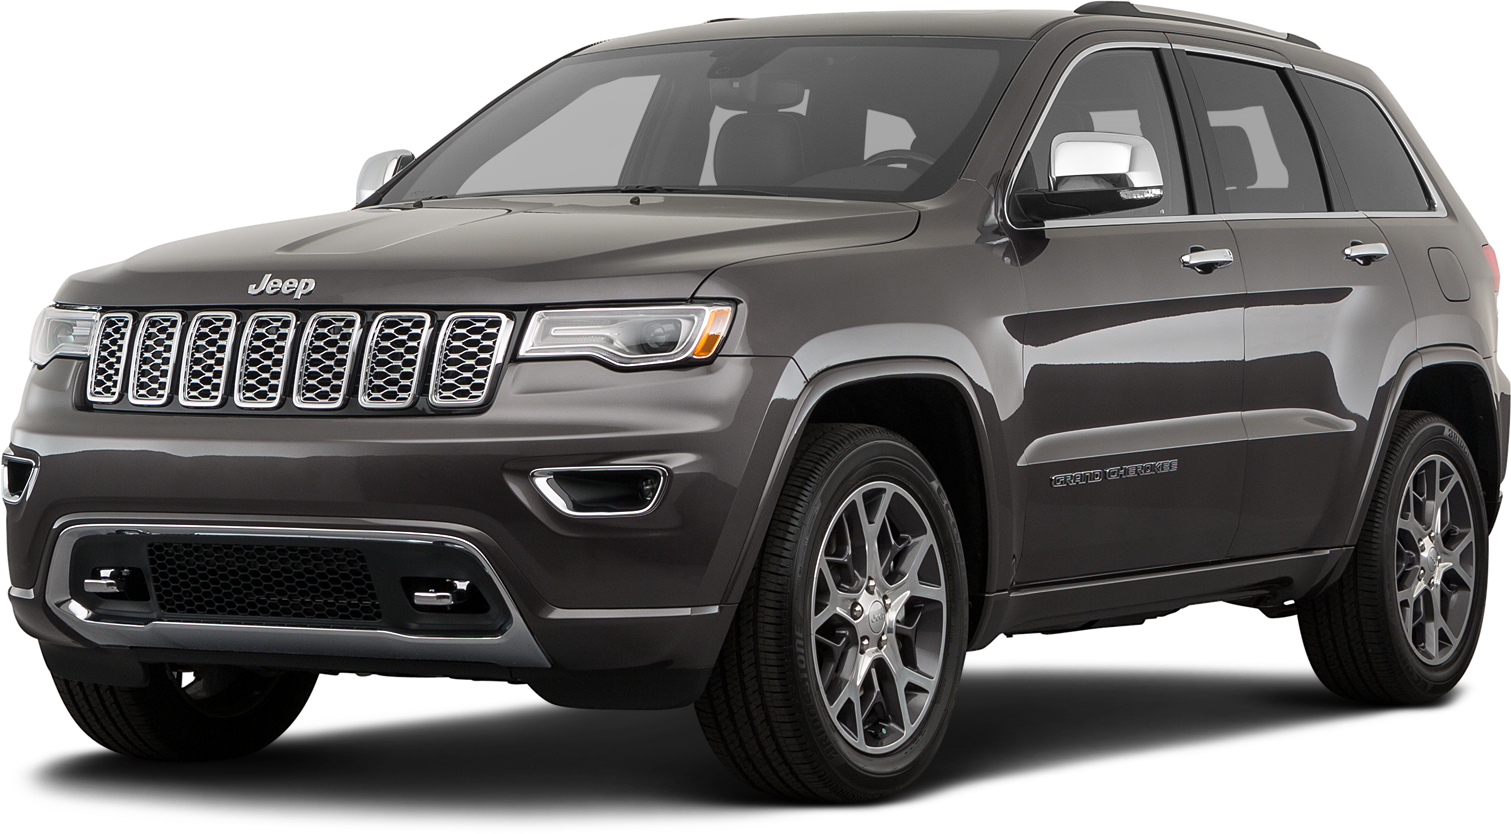 15 Gallery of 2019 Jeep Incentives New Review with 2019 Jeep Incentives